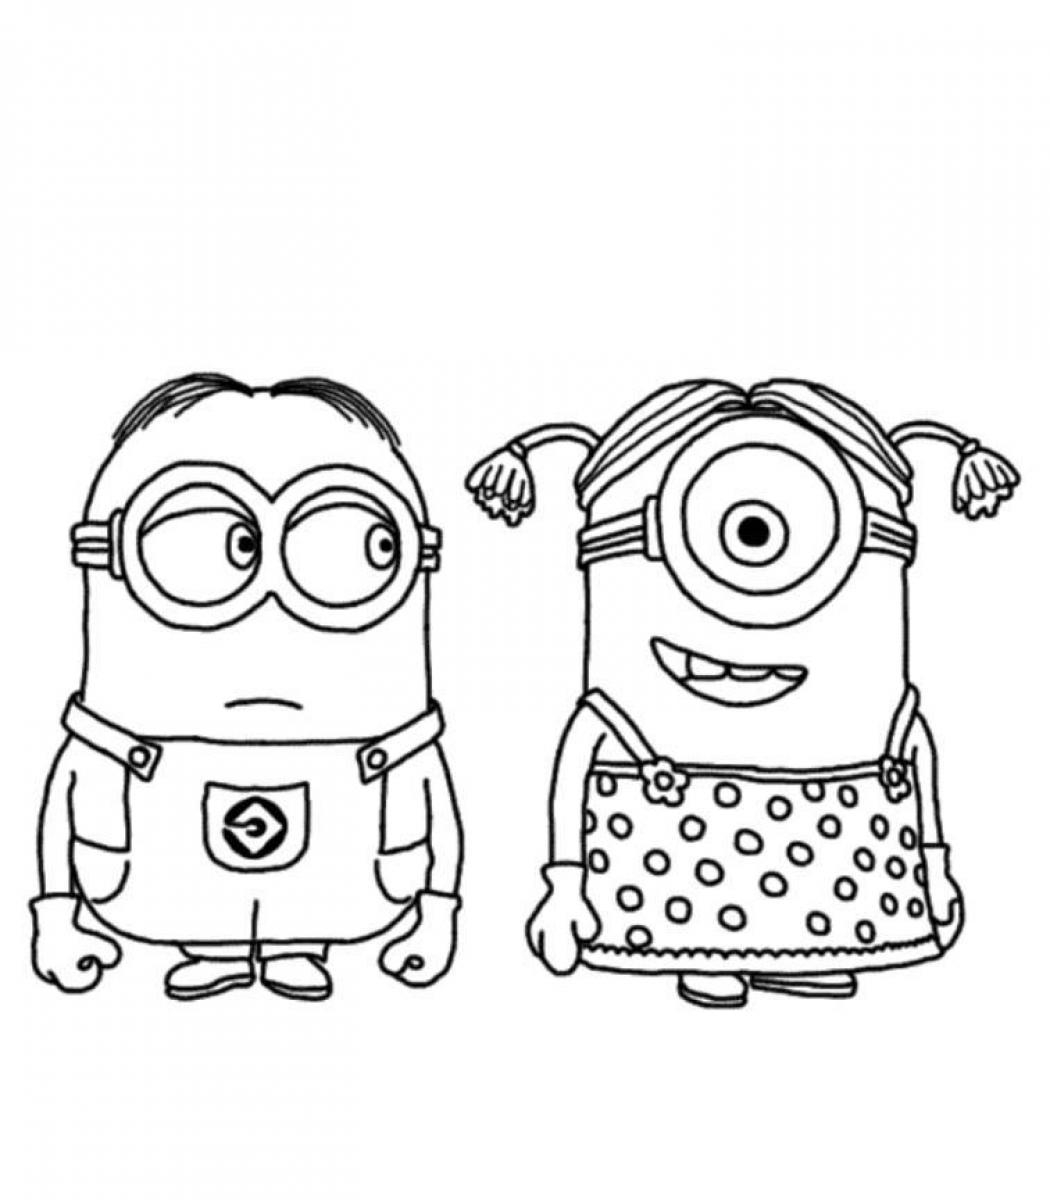 1050x1200 Cool Despicable Me Minions Coloring Pages